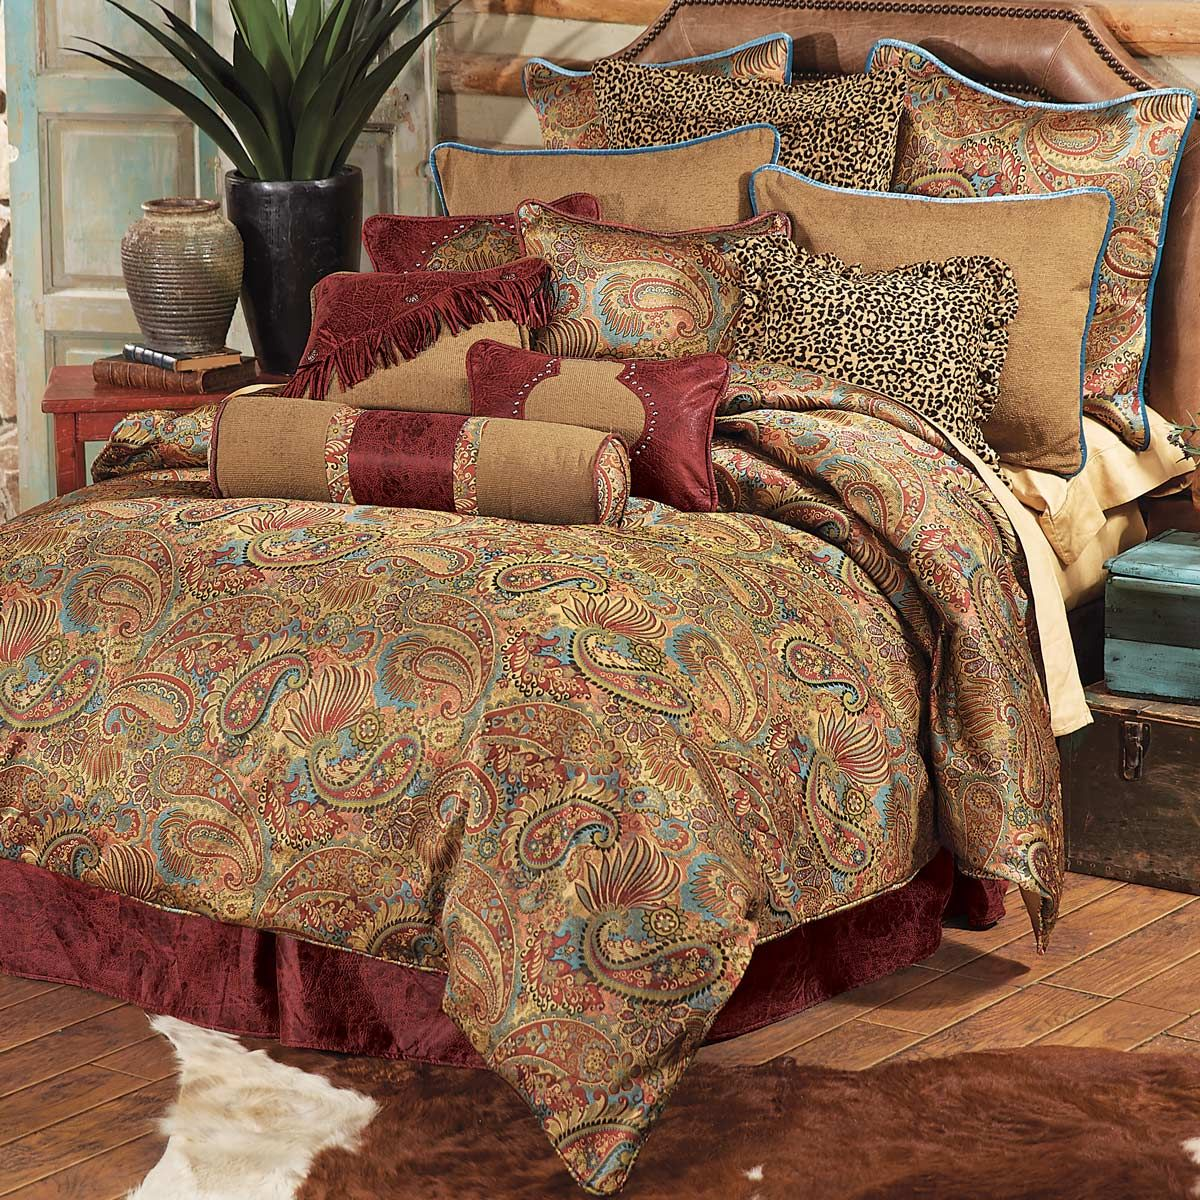 Go To Black Forest Decor Now And Browse Our Enormous Selection Of Rustic  Bedding, Like This Queen Size San Angelo Comforter Set!